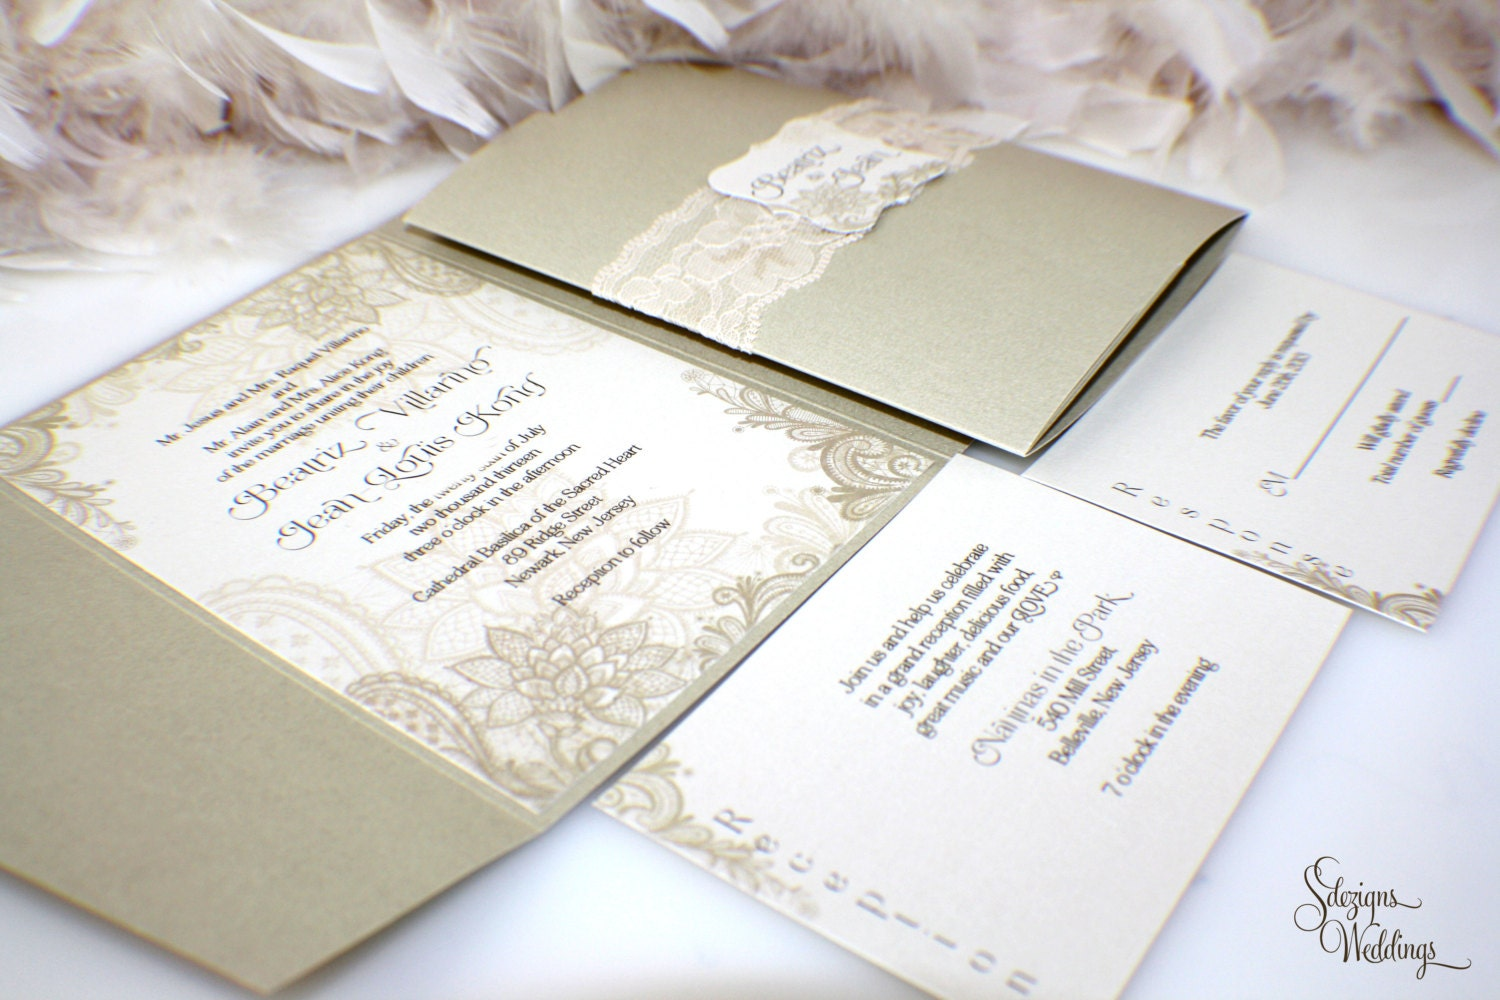 Gorgeous Wedding Invitations: Beautiful Lace Wedding Invitations